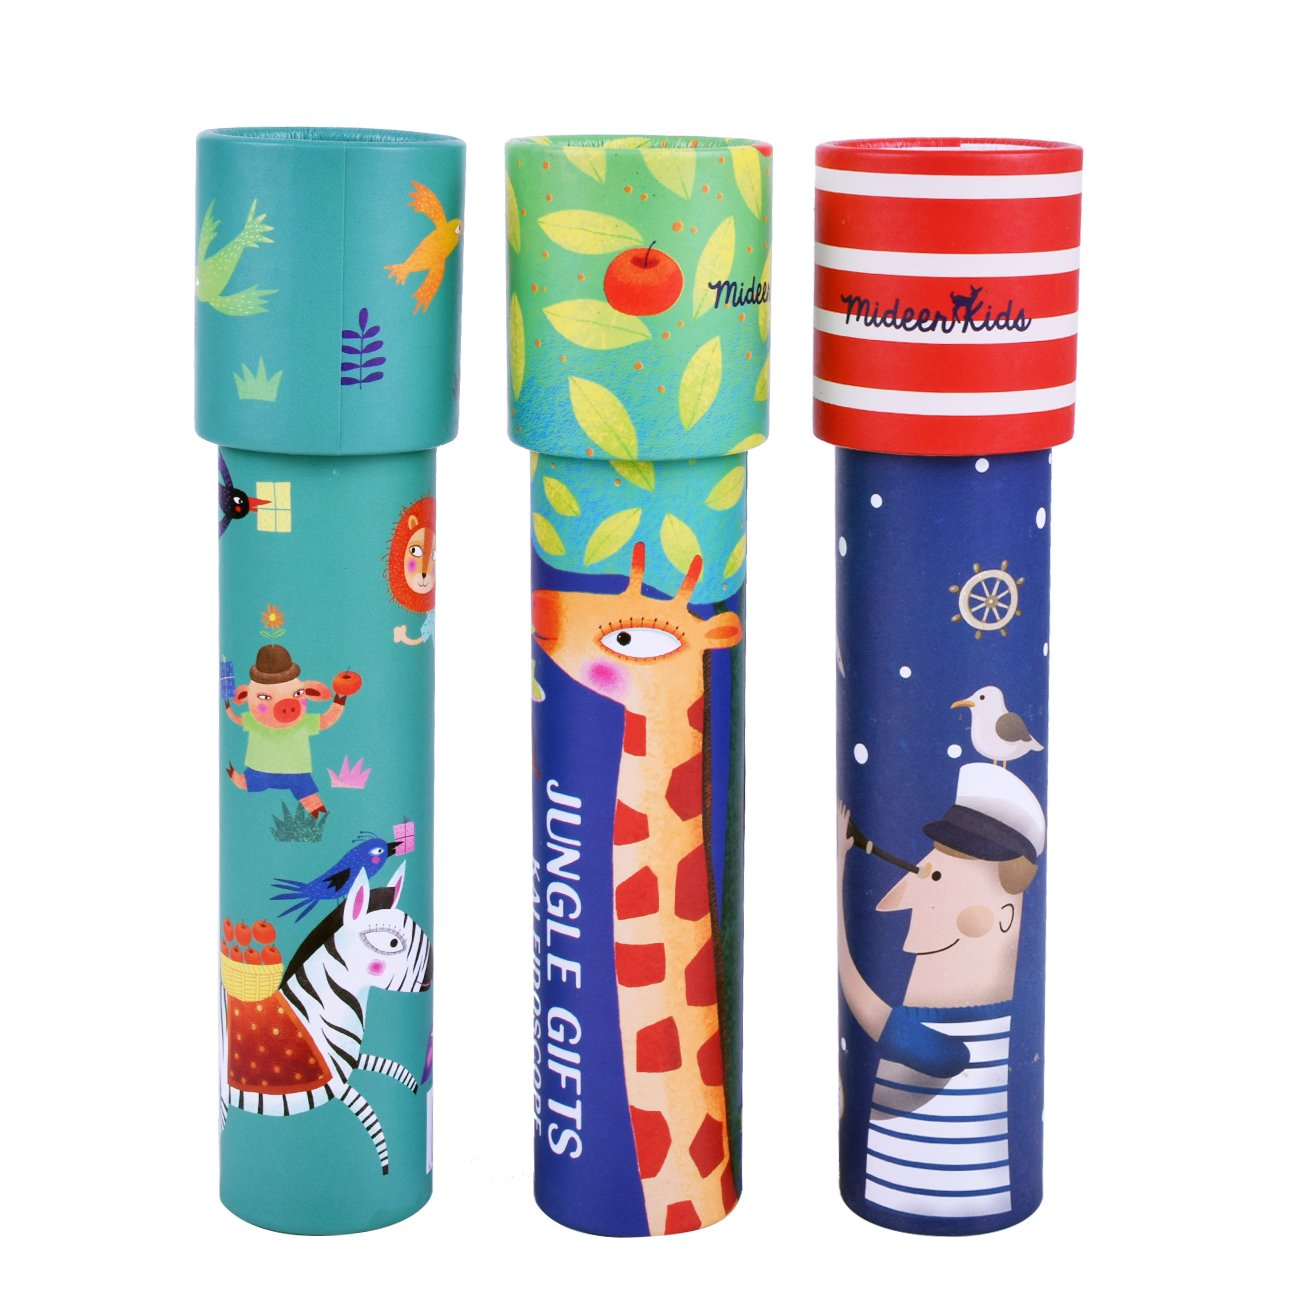 Fengirl Kids Classic Paper Kaleidoscope, Best Gift Idea, 3 Pack